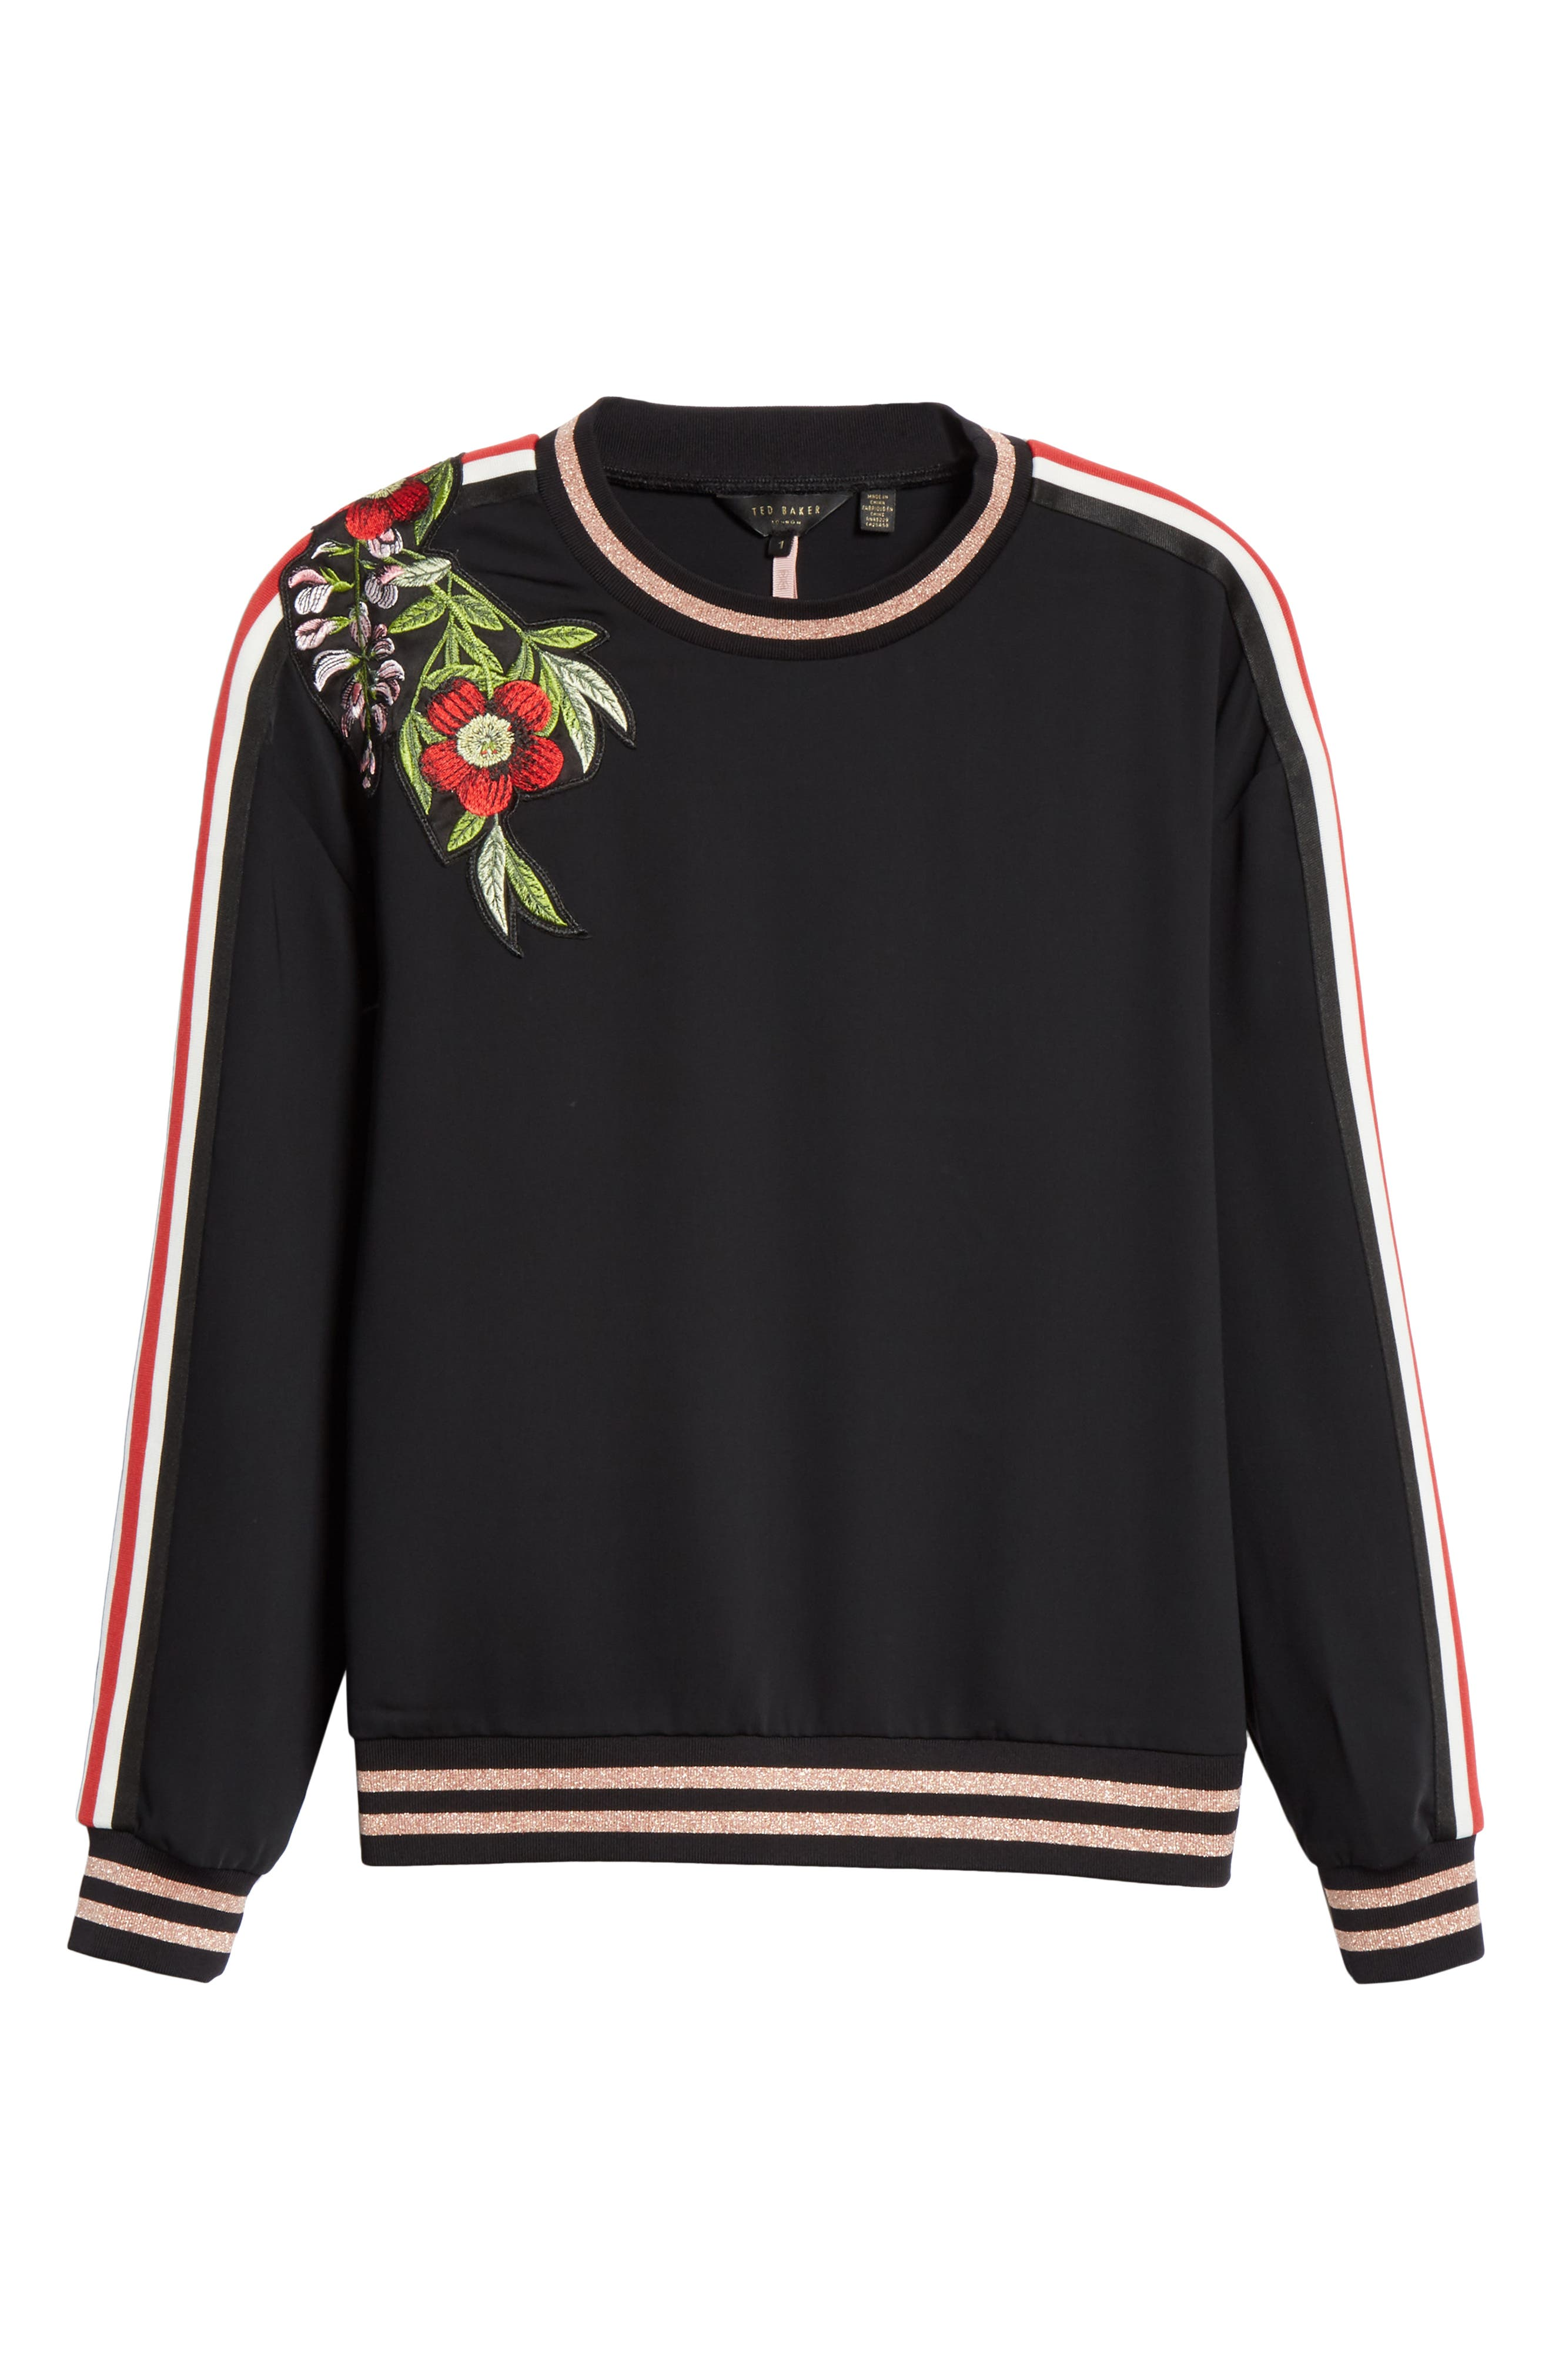 Maddeyy Embroidered Trim Top,                             Alternate thumbnail 6, color,                             001